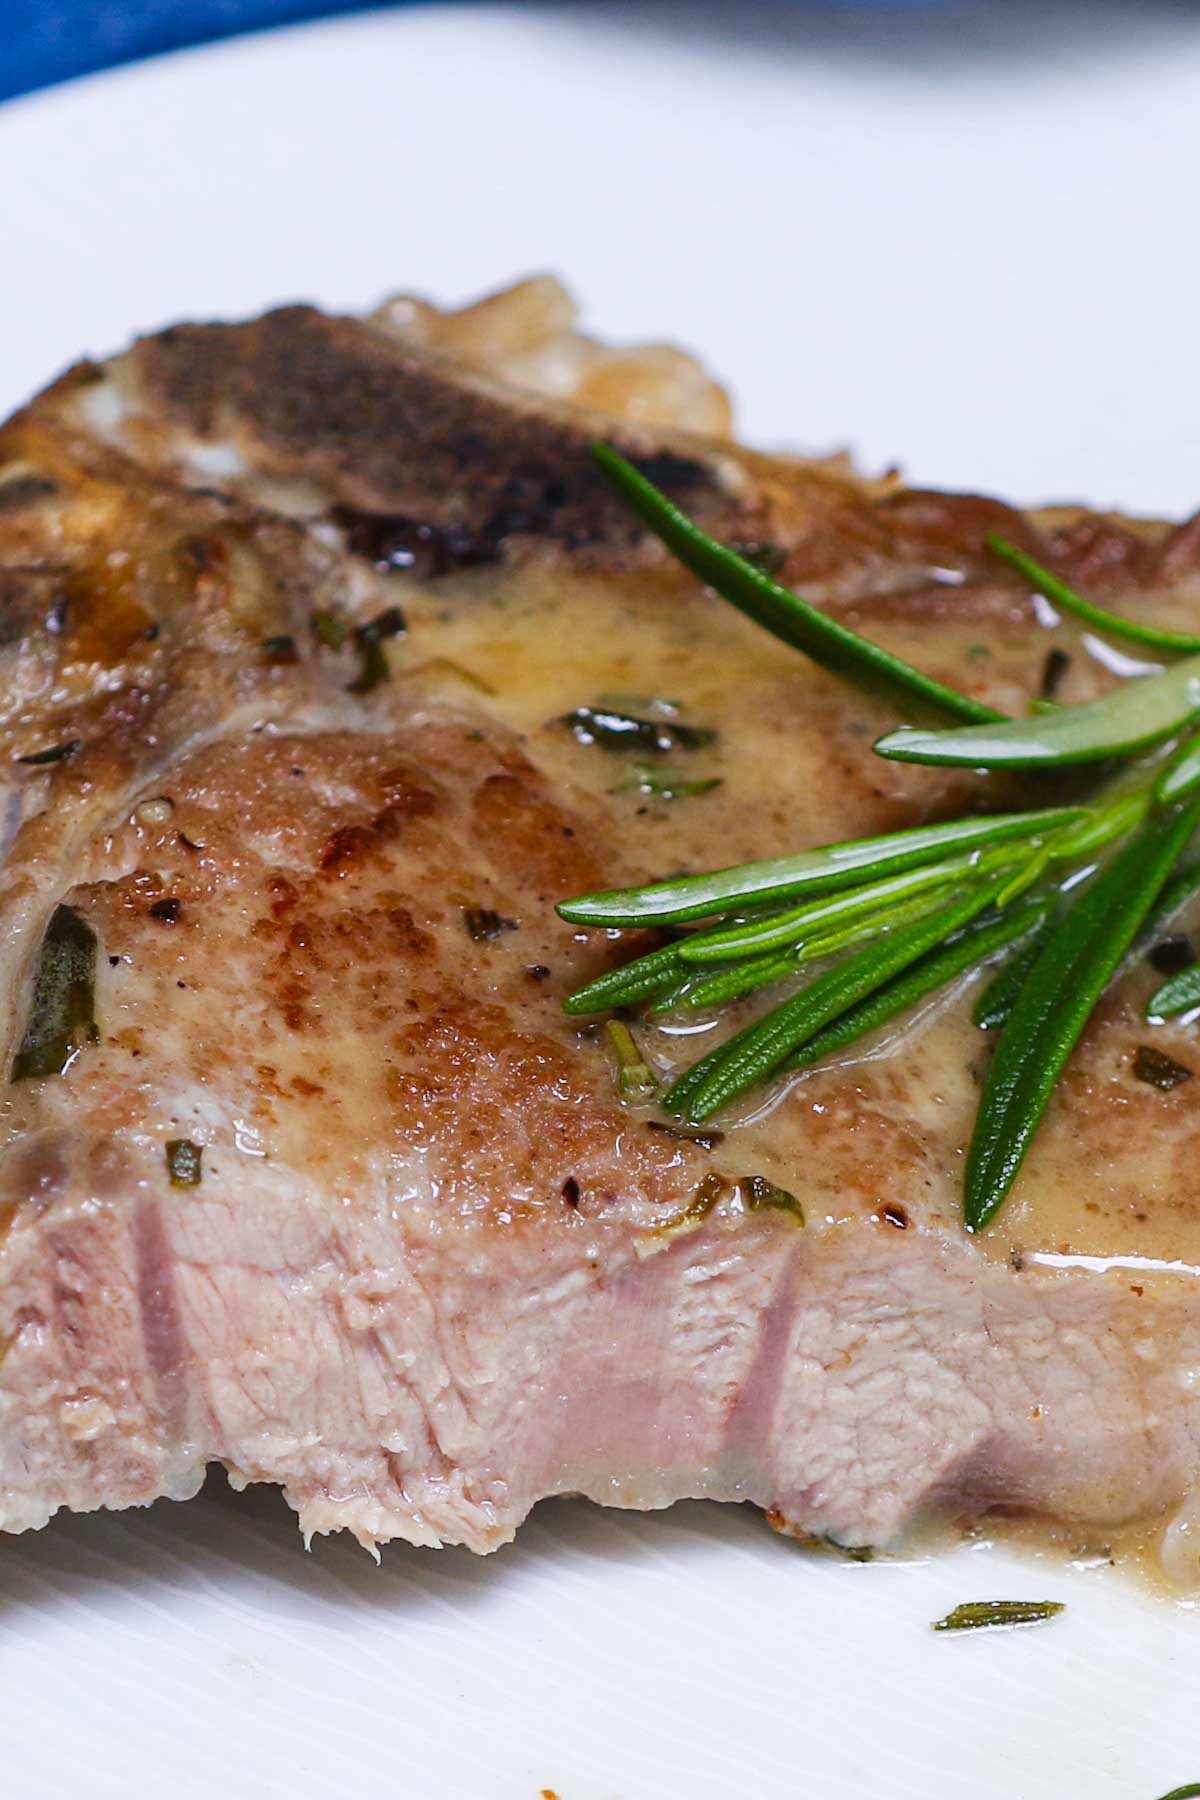 Cross-section view of a veal chop cooked to medium doneness.